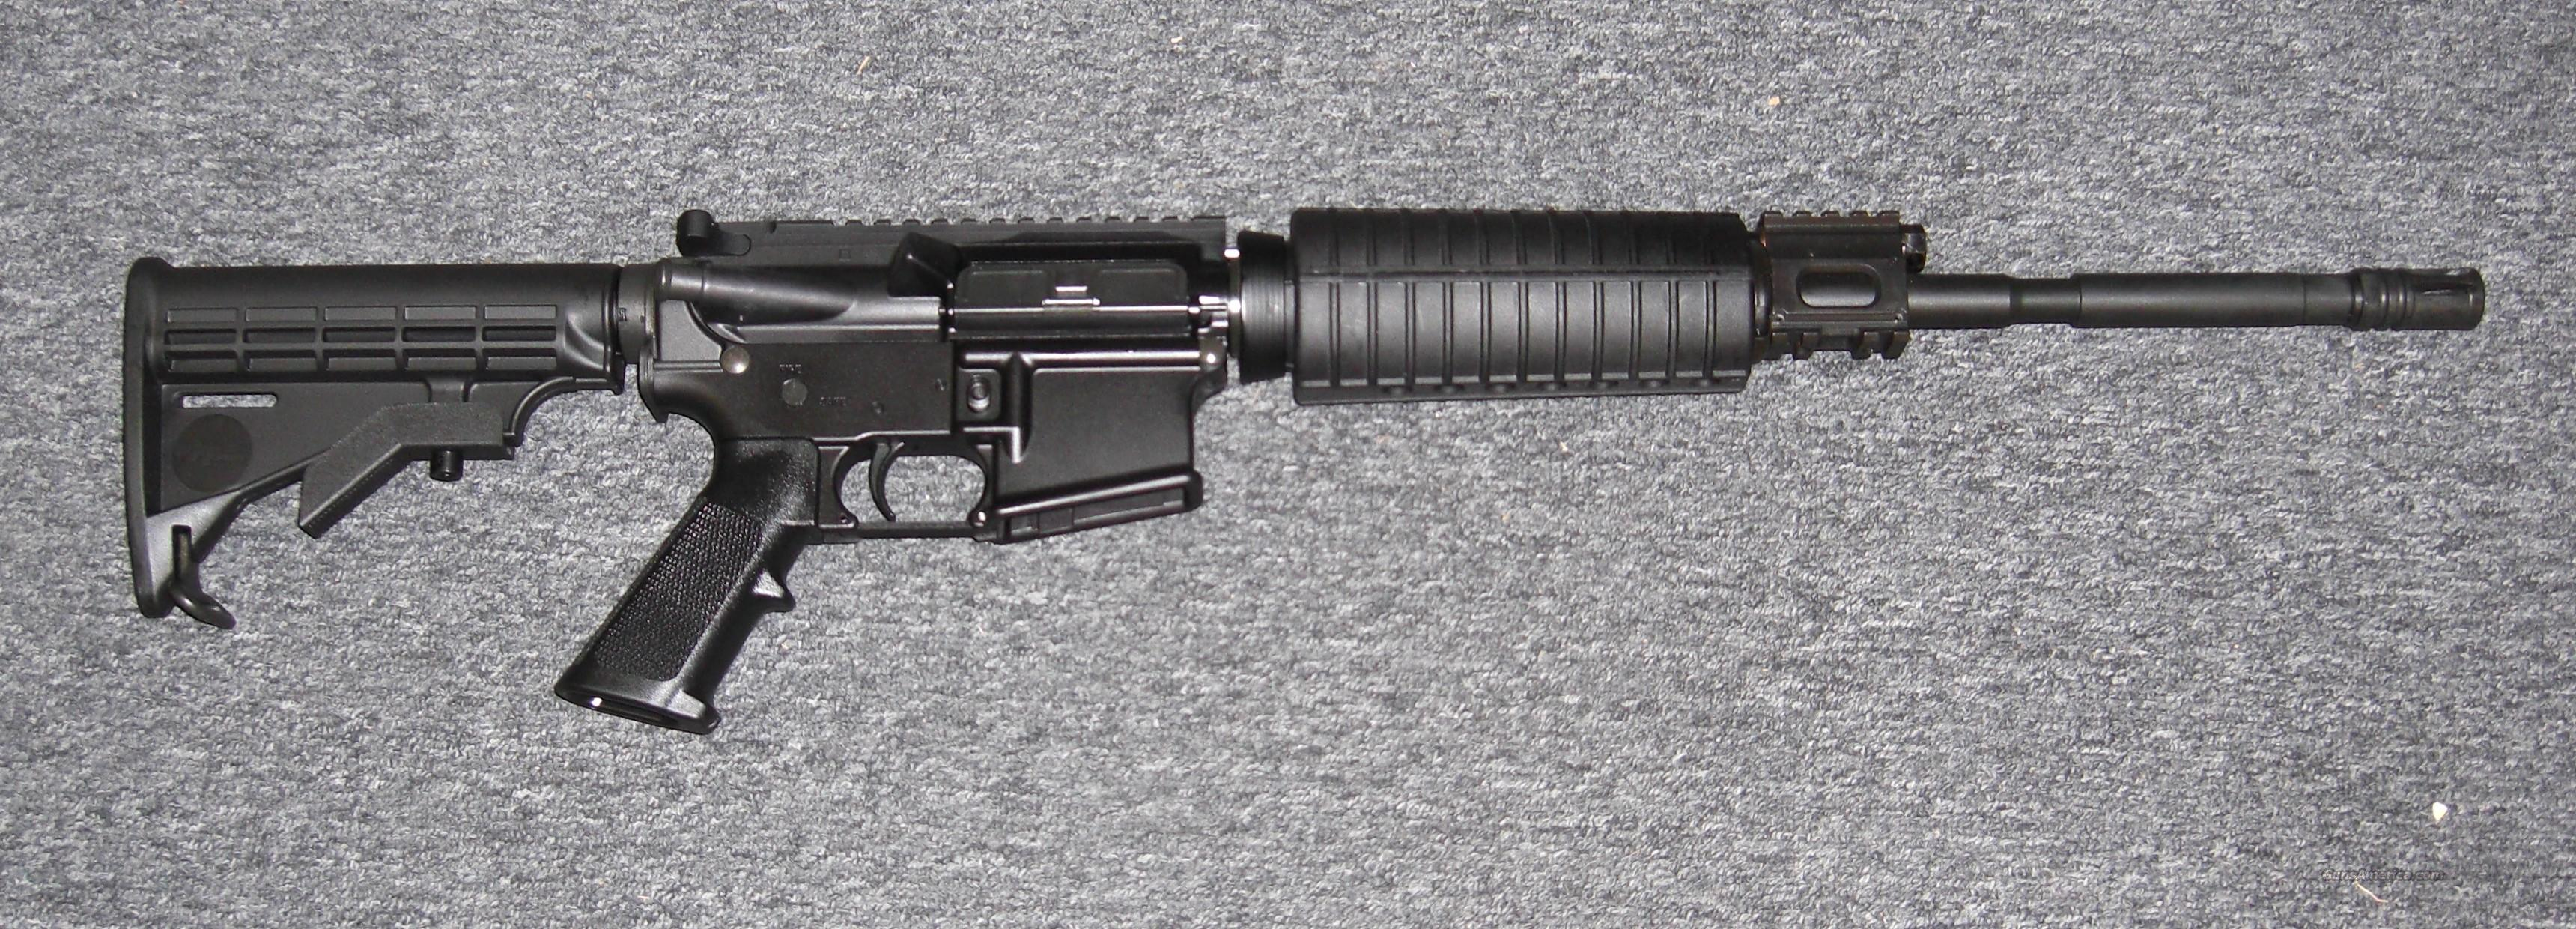 CMMG MOD4 (gas piston)  Guns > Rifles > AR-15 Rifles - Small Manufacturers > Complete Rifle